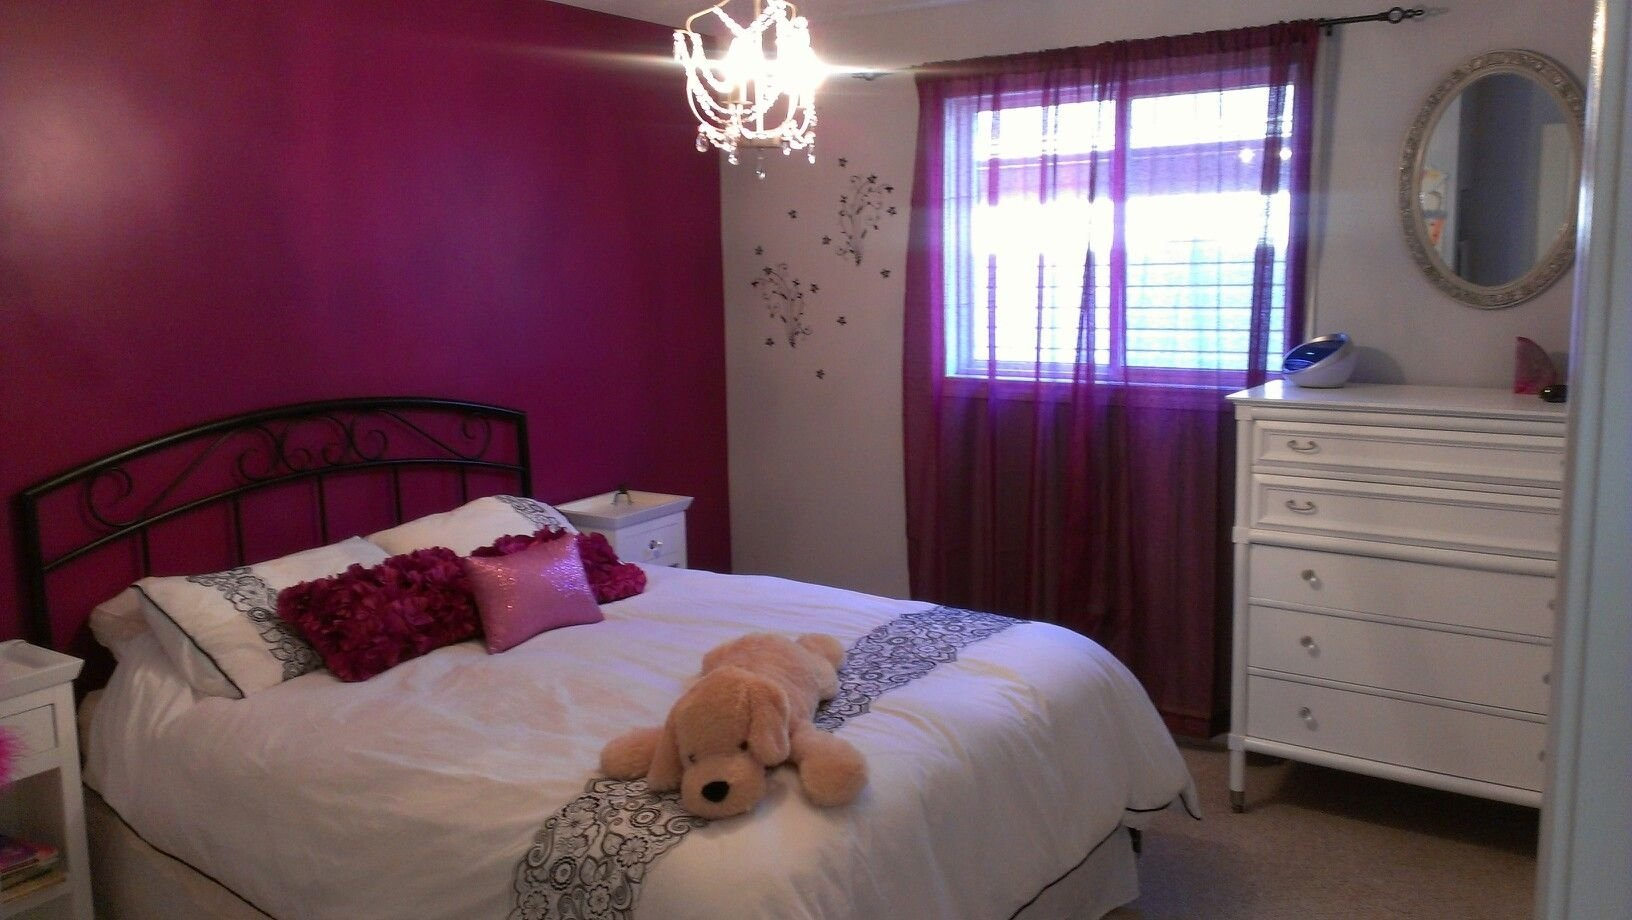 10 Pretty 10 Year Old Bedroom Ideas pin it like image home decor pinterest 10 years bedrooms and room 2020